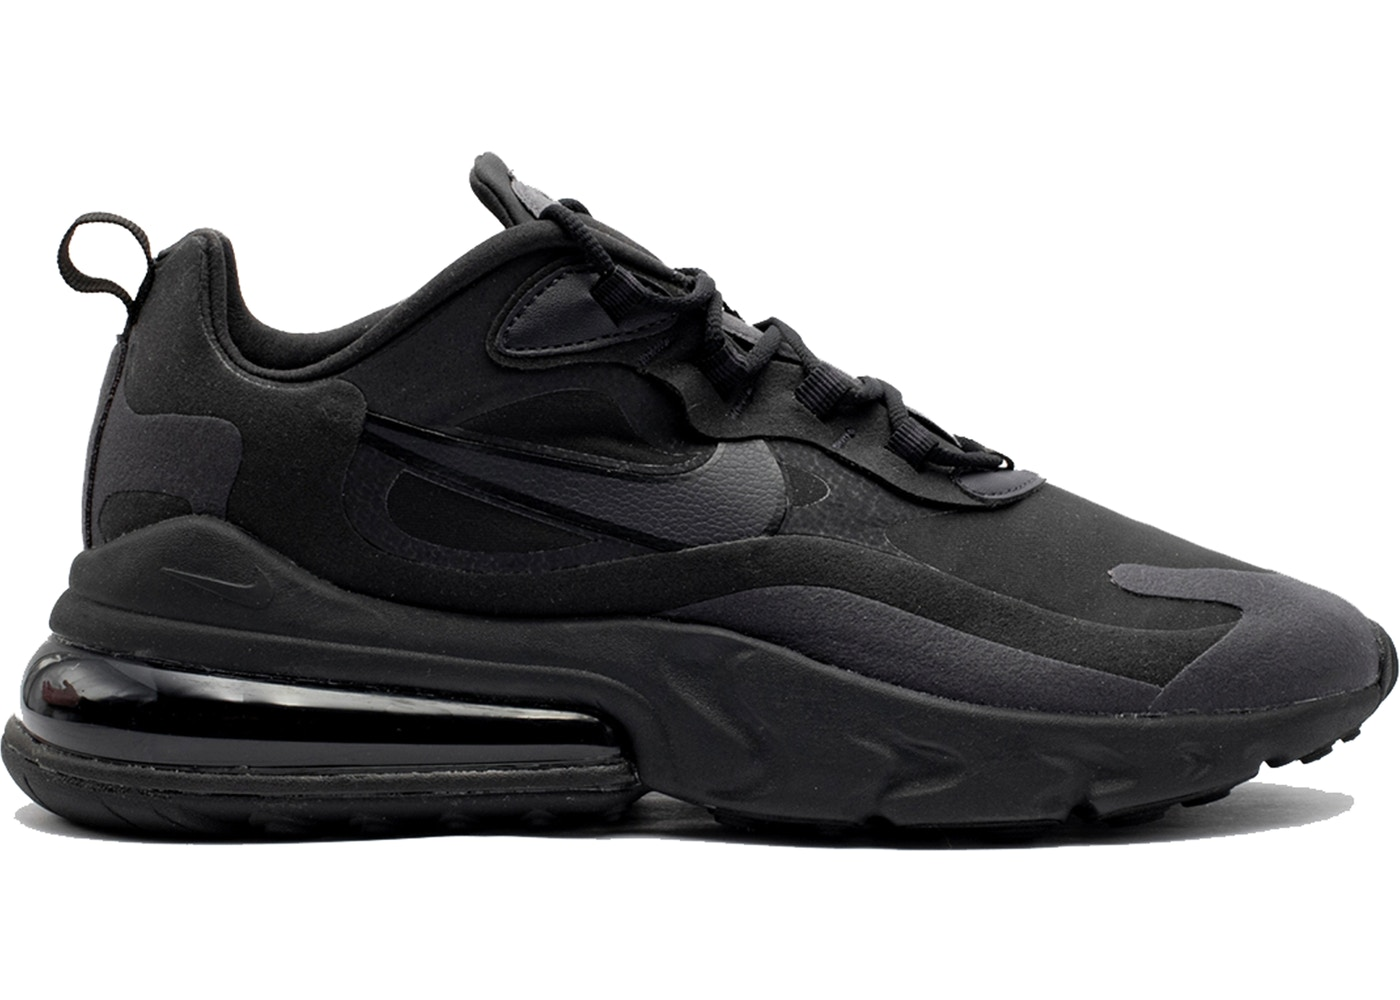 ナイキ NIKE エア マックス スニーカー 【 AIR MAX 270 REACT HIP HOP TRIPLE BLACK OIL GREYOIL GREYBLACK 】 メンズ